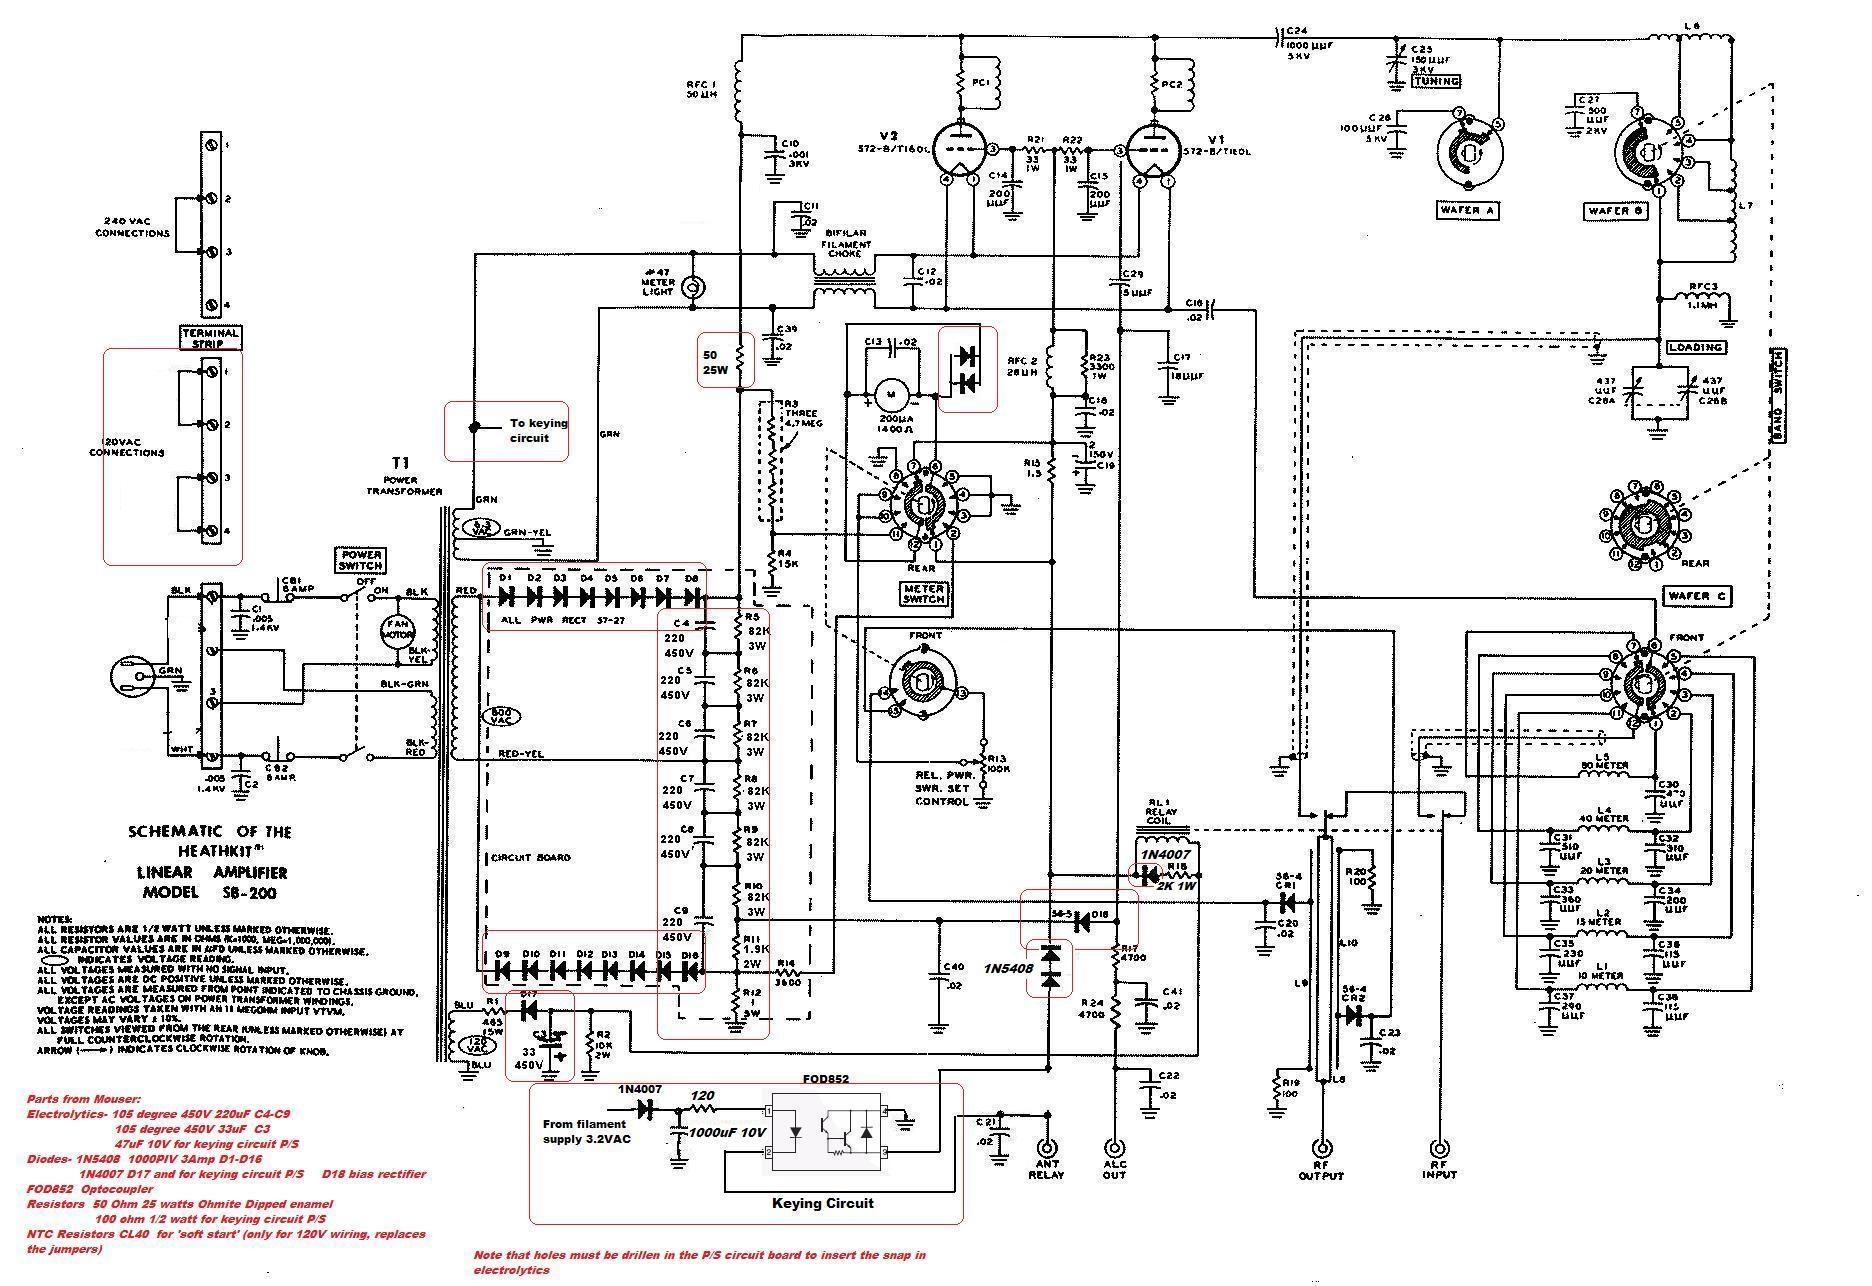 security key light switch wiring diagram